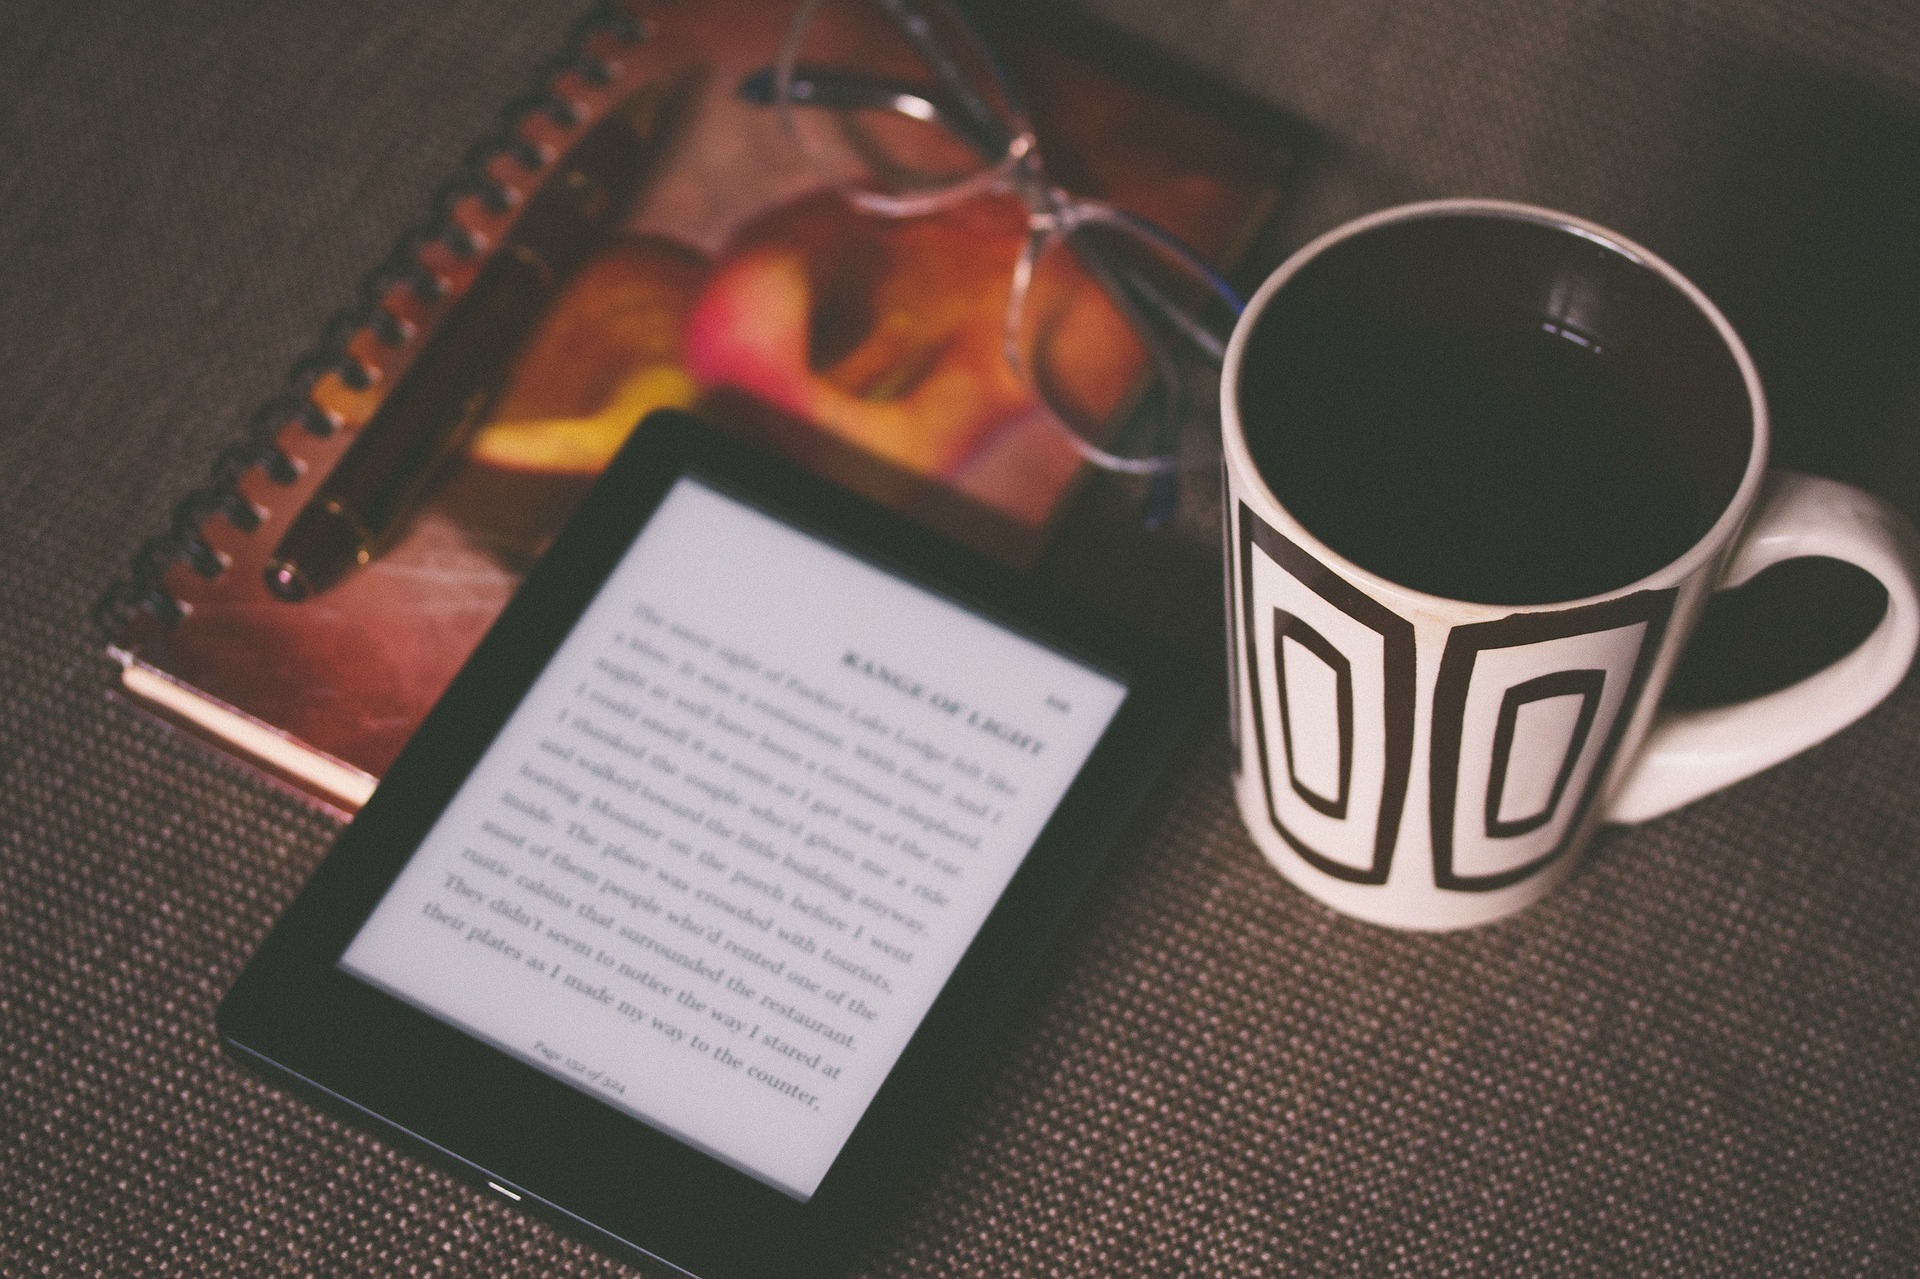 GENERATING EBOOKS FROM CONTENT YOU ALREADY HAVE